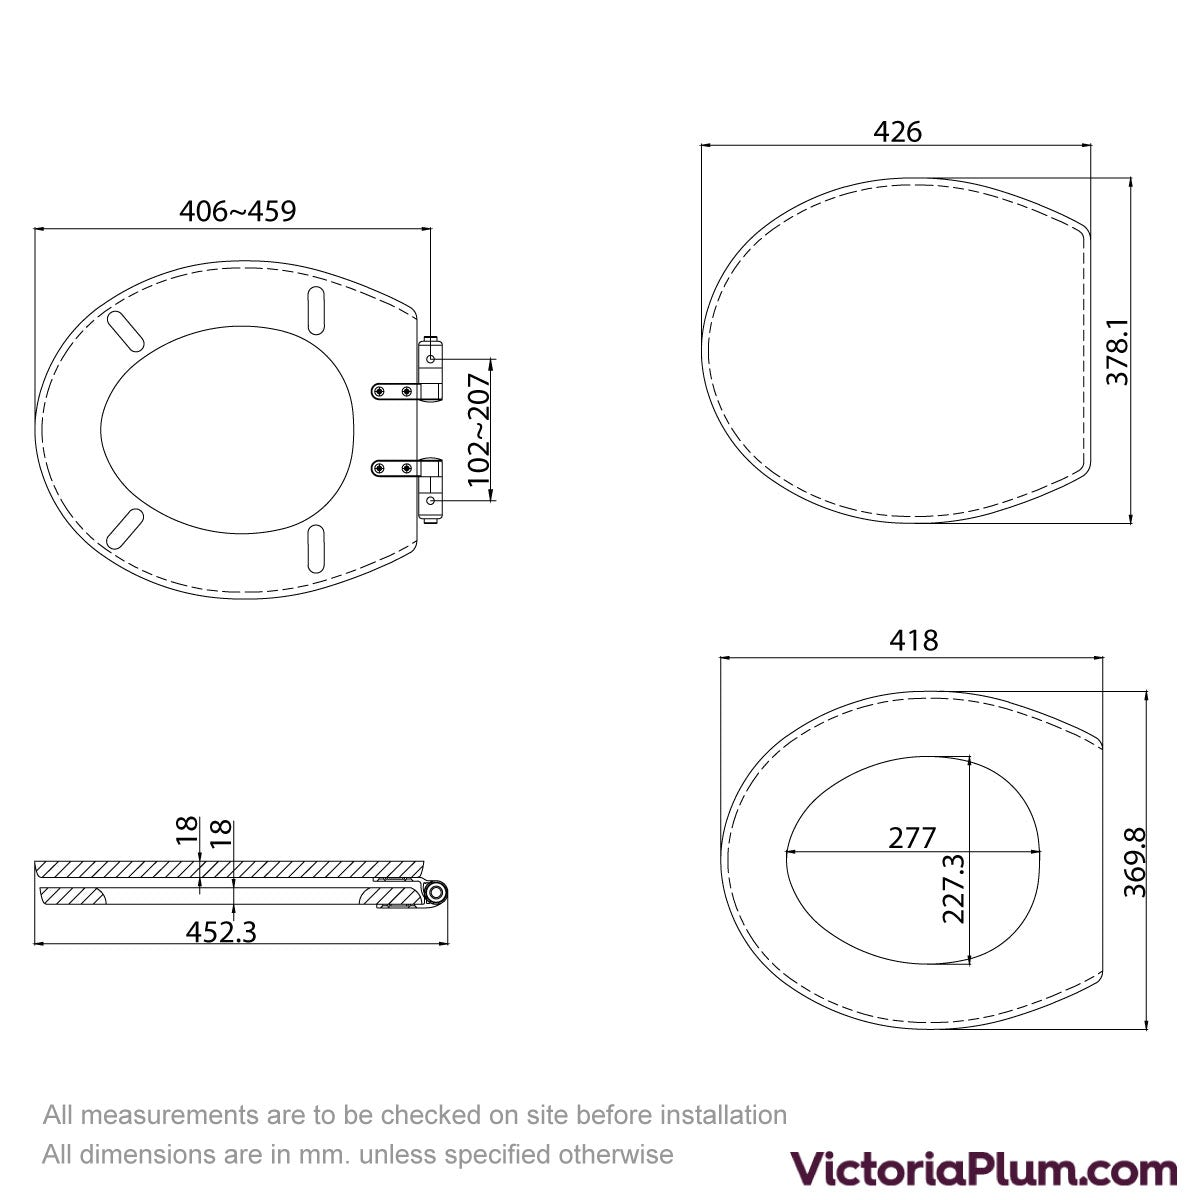 Dimensions for The Bath Co. red oak wood top fixing soft close seat